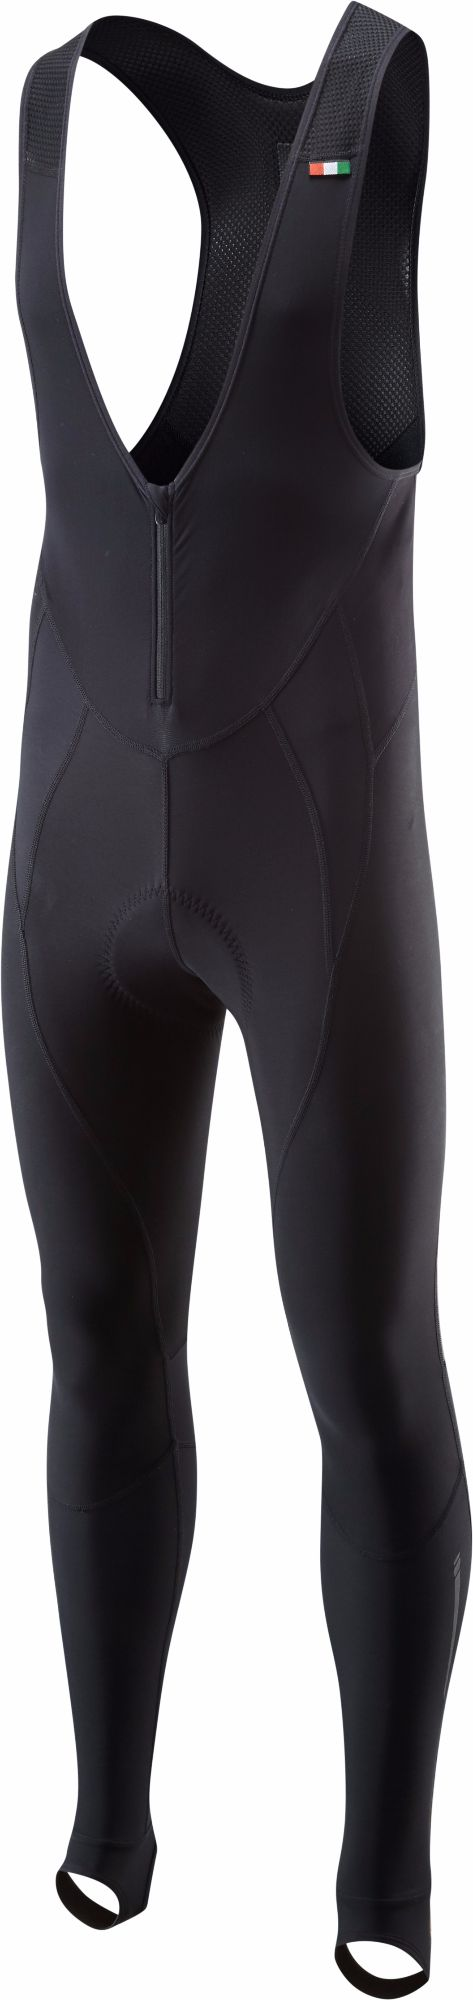 Madison Road Race Apex Mens Bibtights with Pad